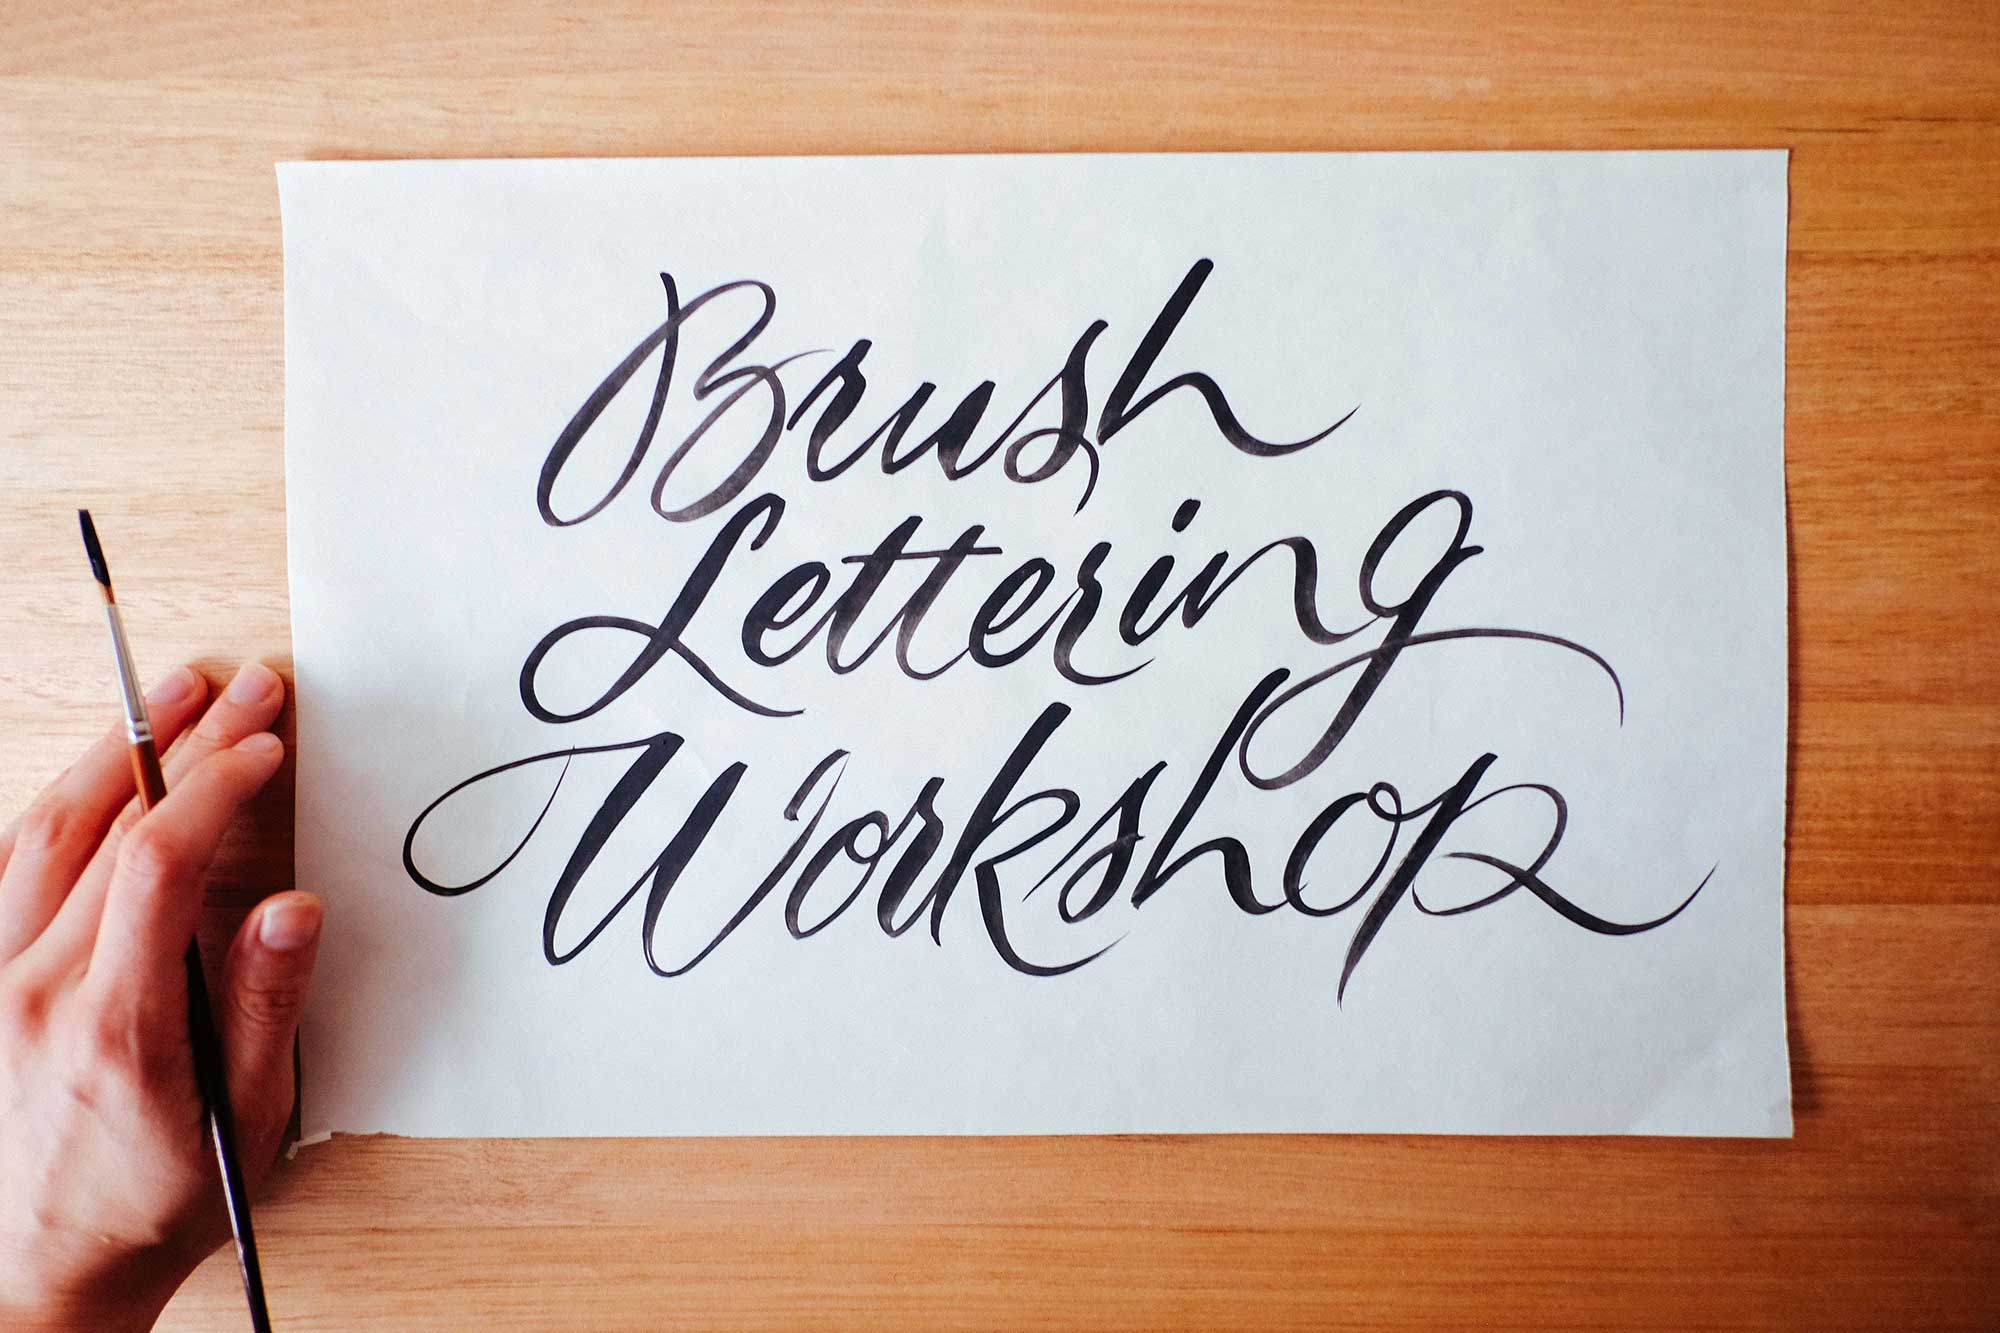 Brush Lettering Workshop, Melbourne 8th-9th July 2017